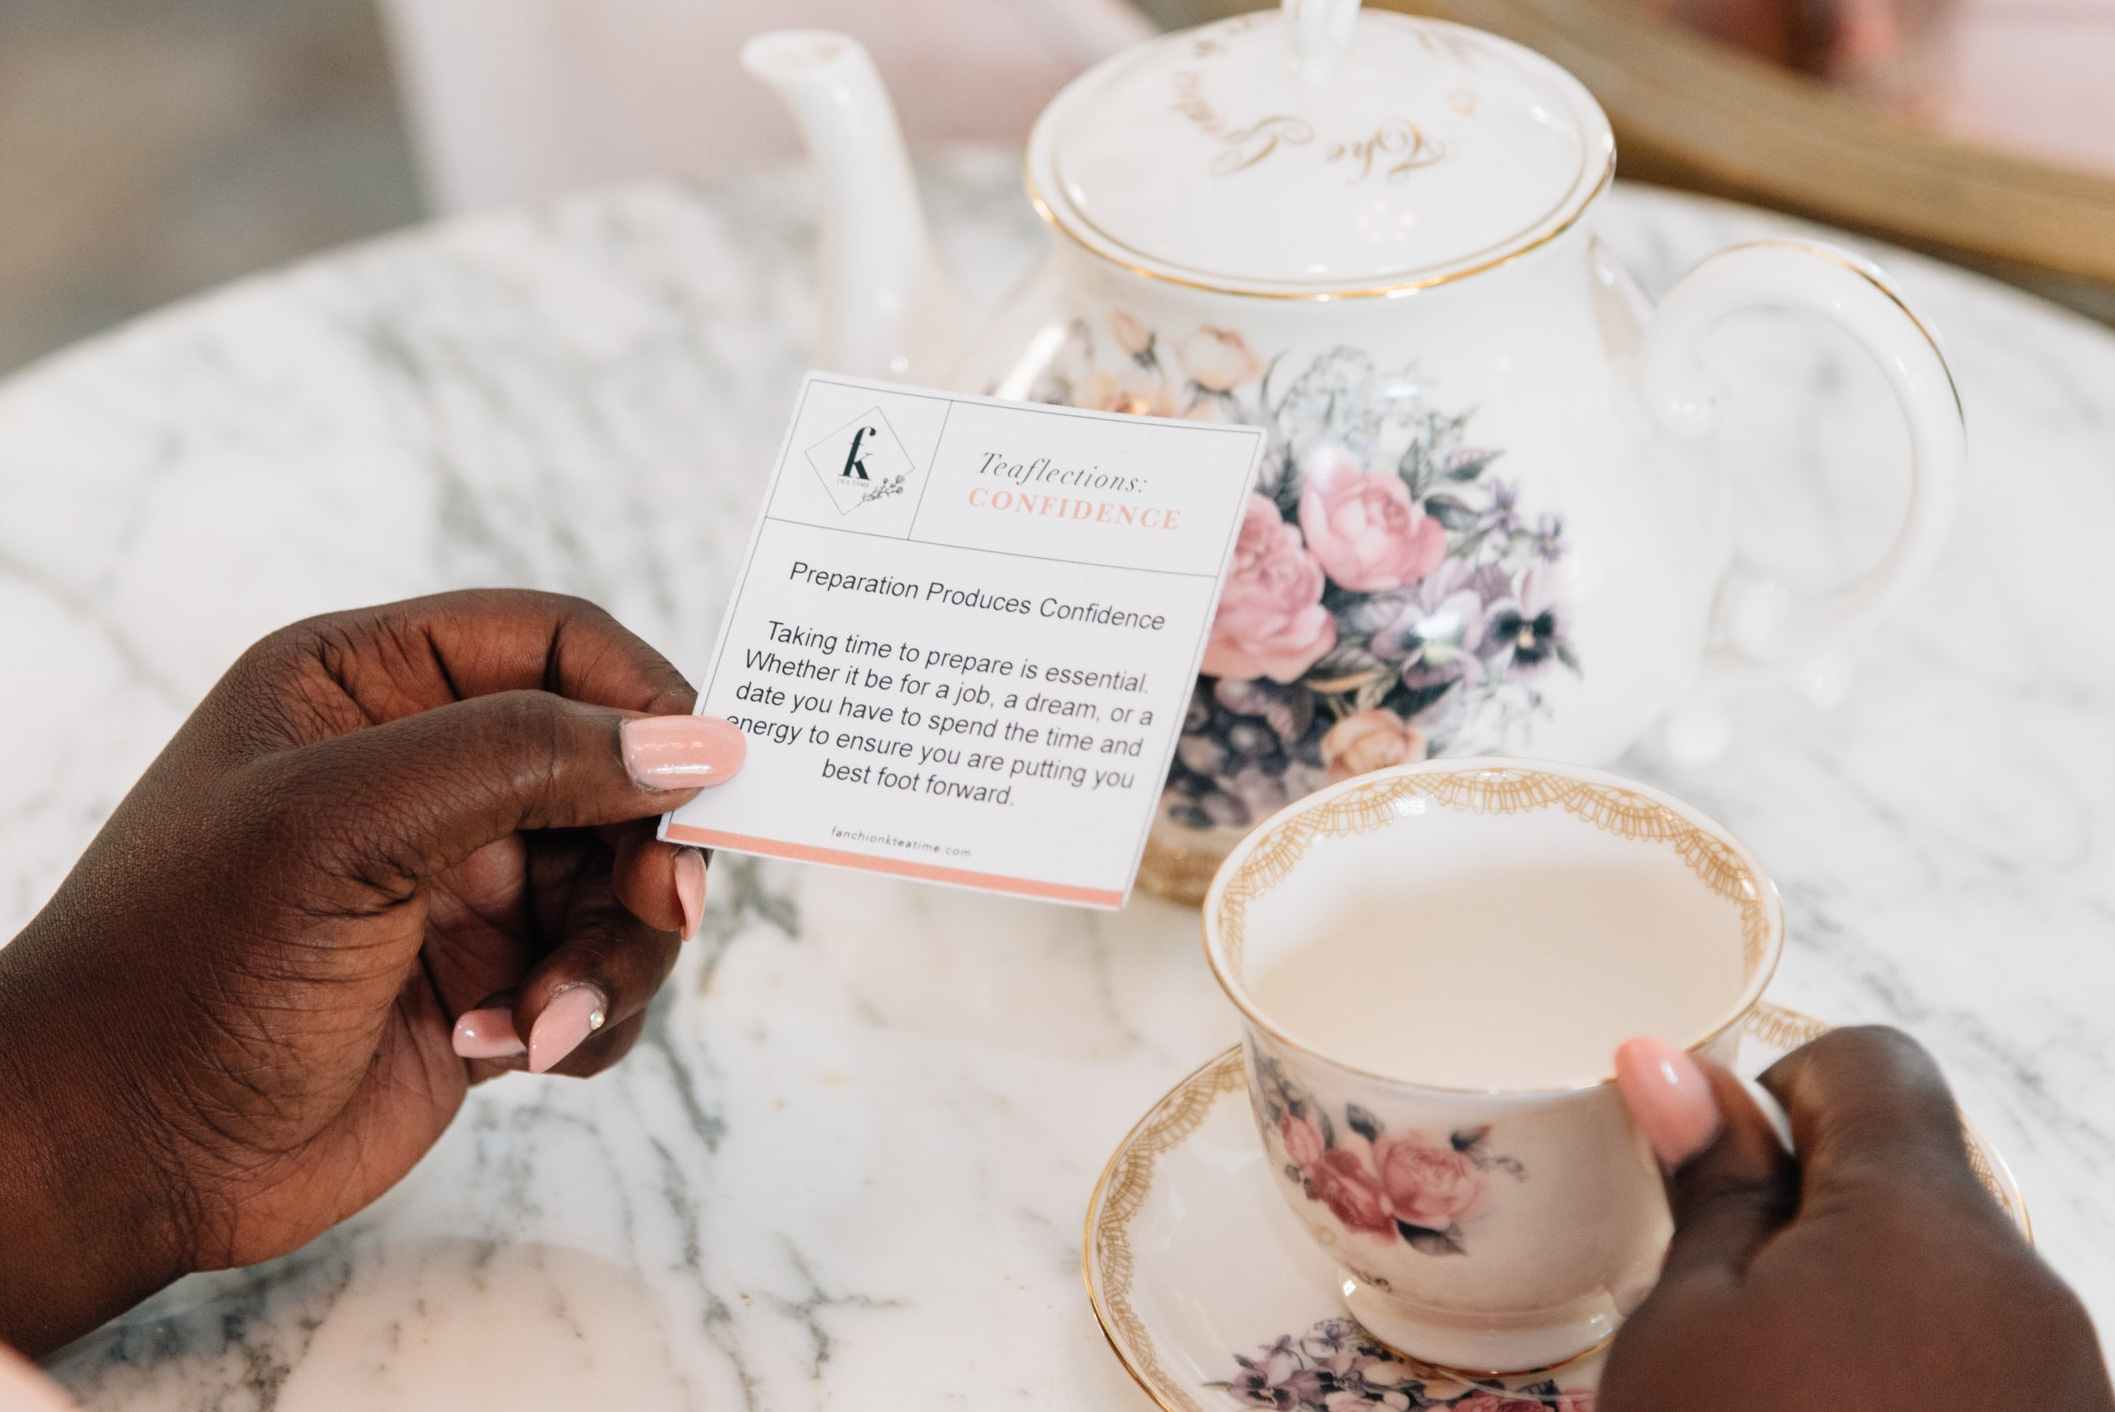 Tea-Flections - Tea-FlectionsWhat are Tea- Flections? Tea- Flections are inspirational moments created by our team to bring love, hope, confidence and inspiration to our customers. Each jar of Fanchion K's Tea Time comes with their own